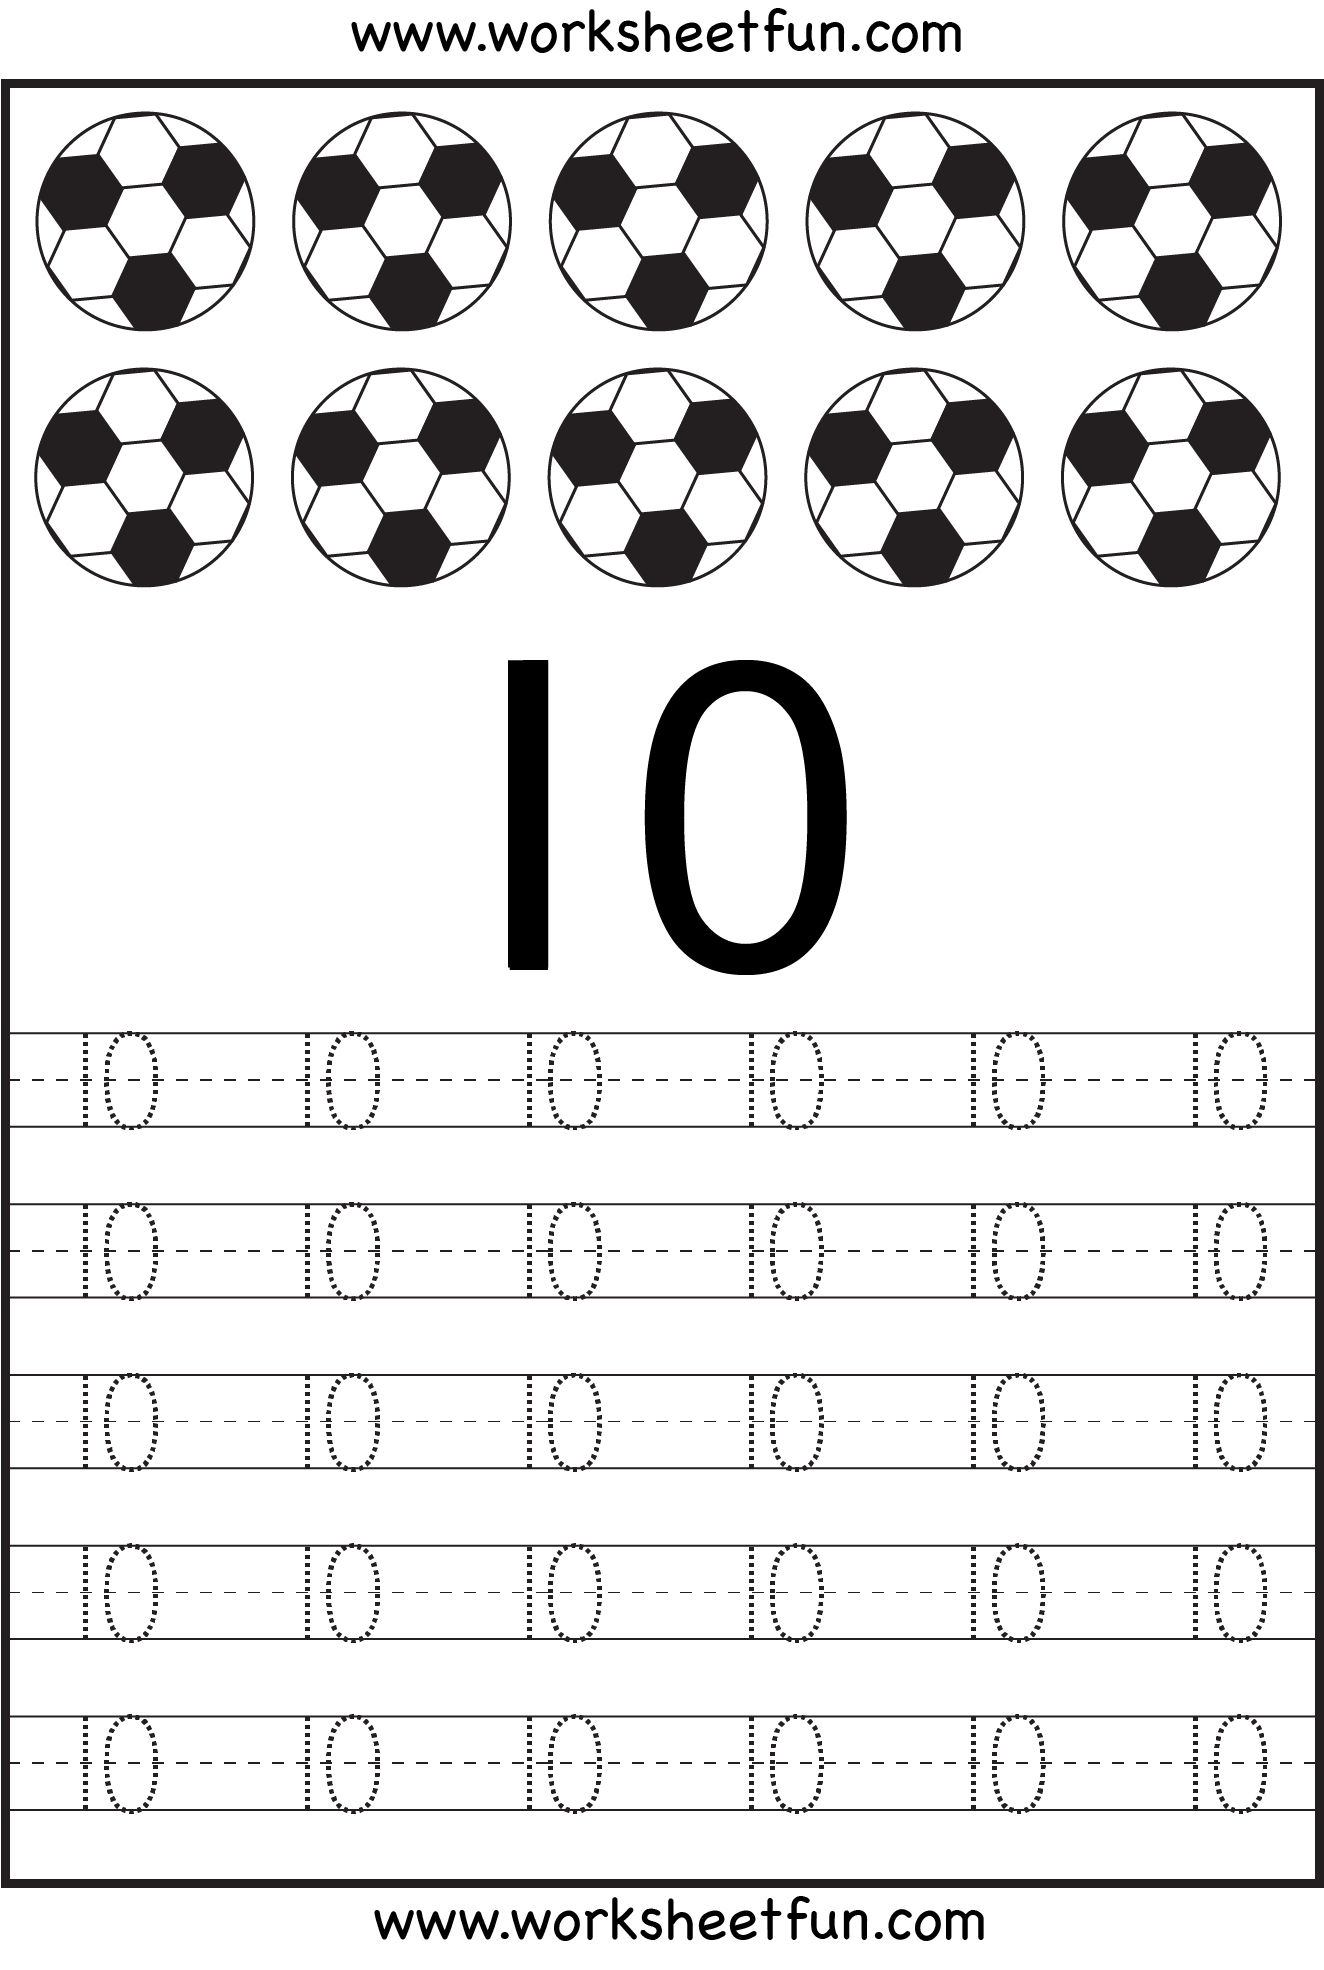 Number Tracing Worksheets For Kindergarten 1 10 Ten Worksheets Free Printable Worksheets